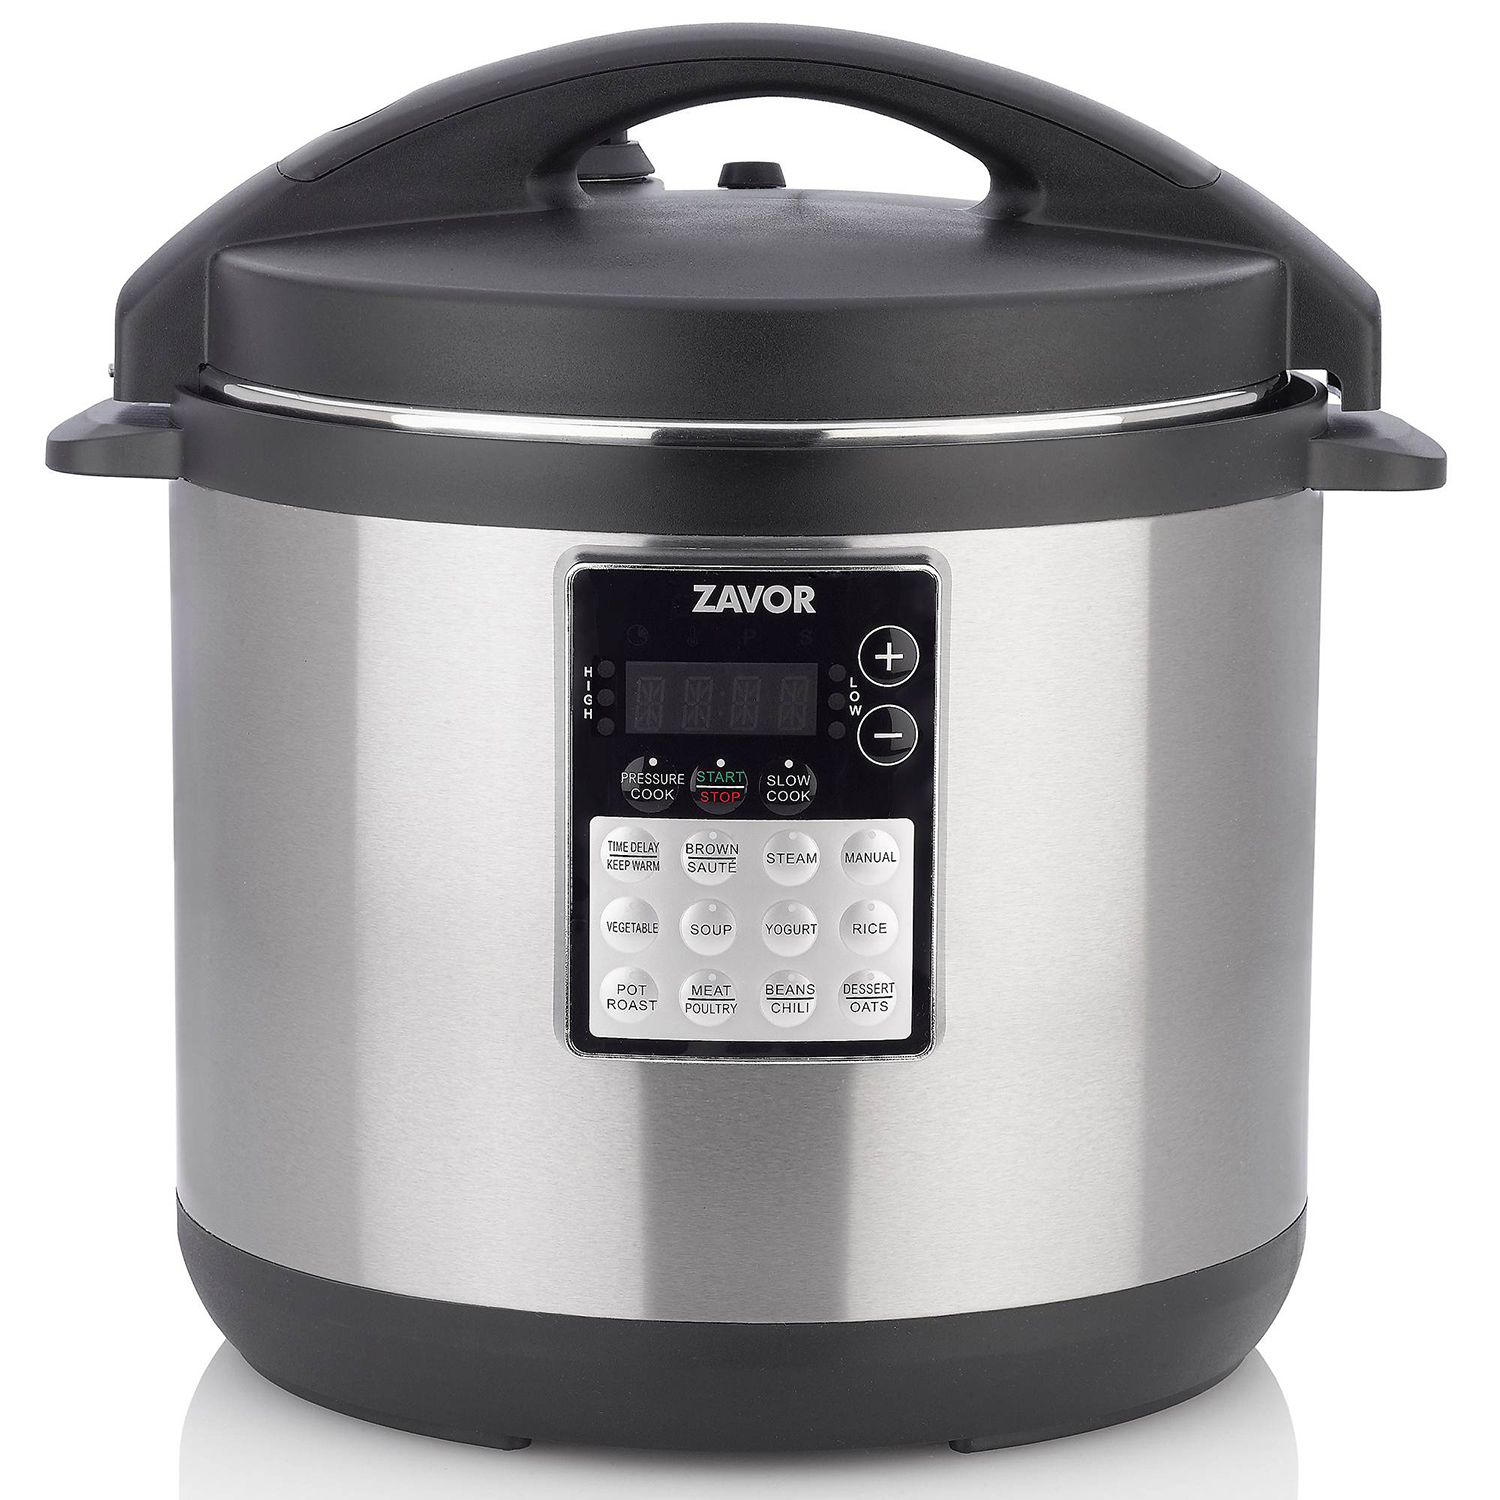 Zavor LUX Edge 8 qt Programmable Electric Multi-Cooker